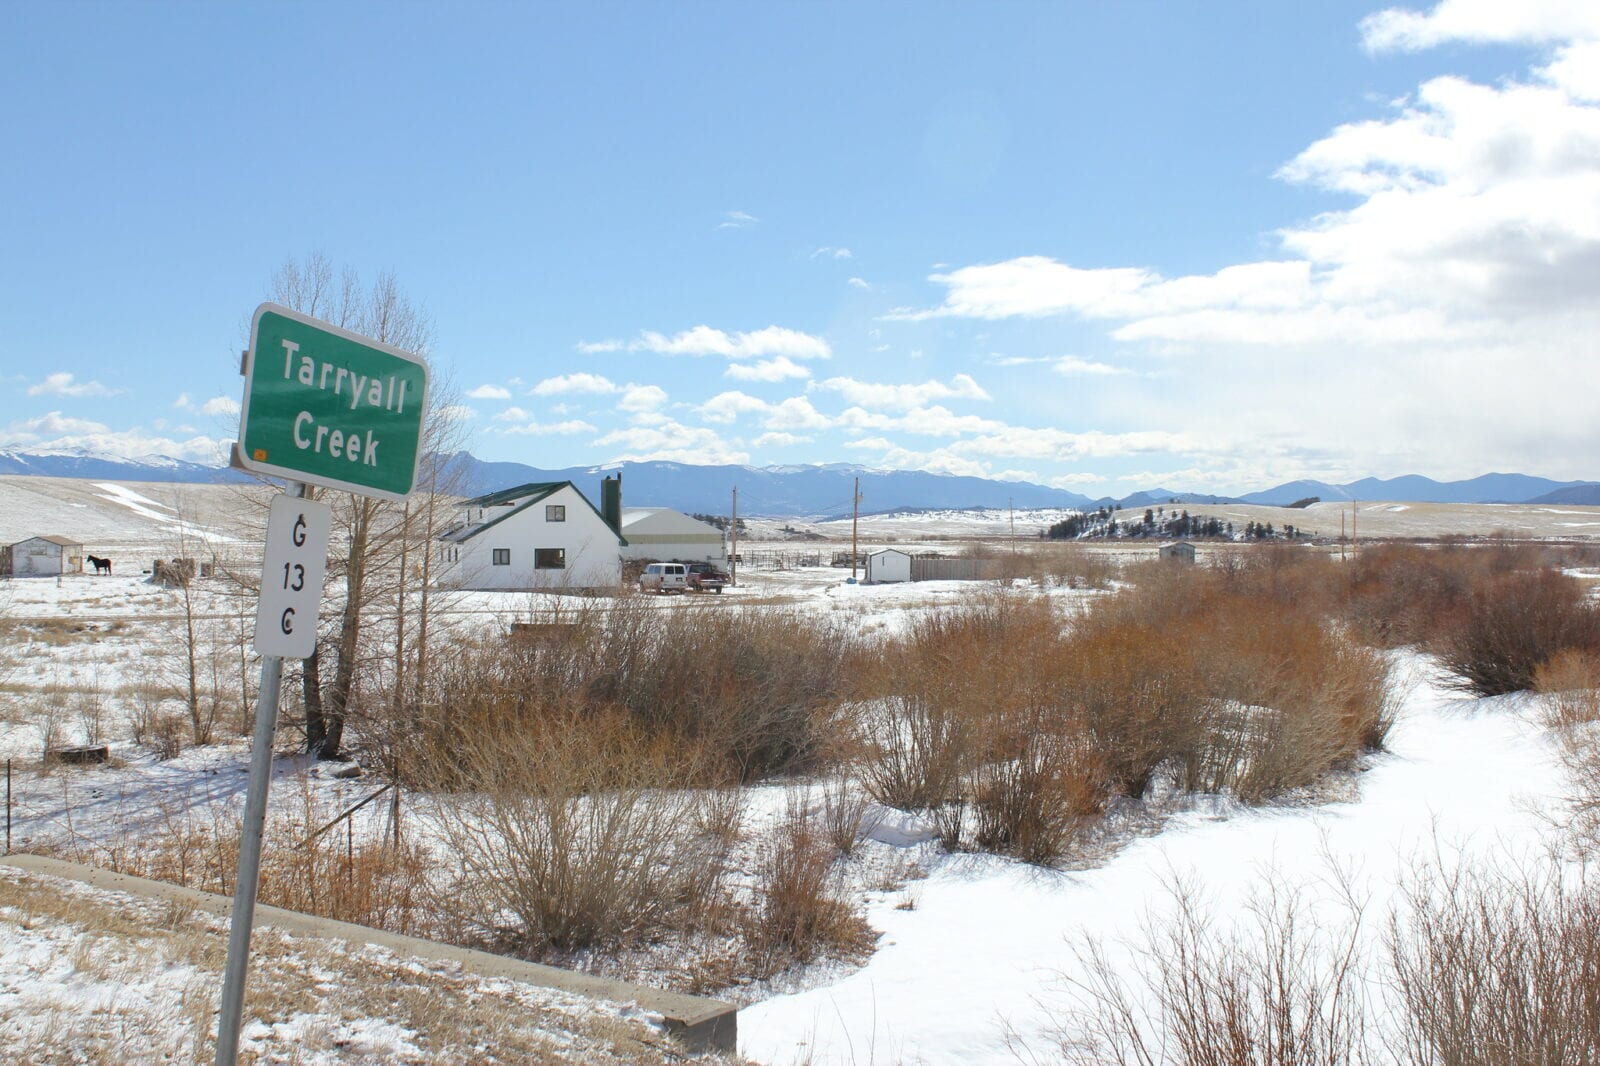 Image of a sign denoting the Tarryall Creek in Colorado